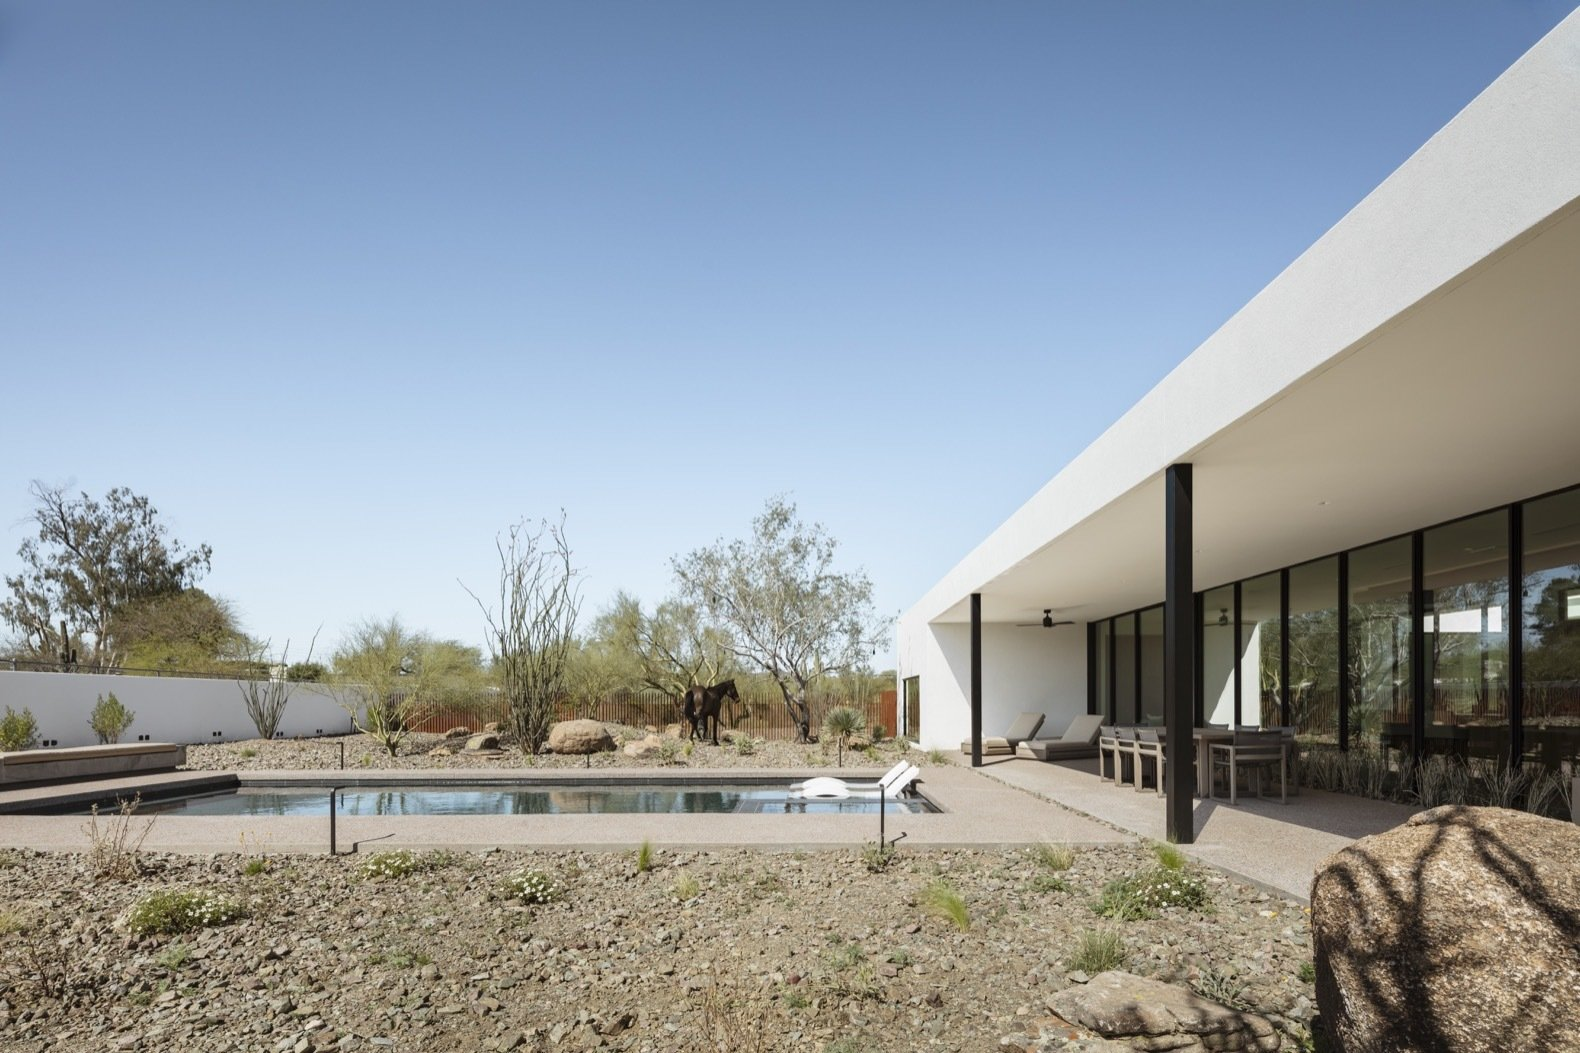 O-asis House by The Ranch Mine pool